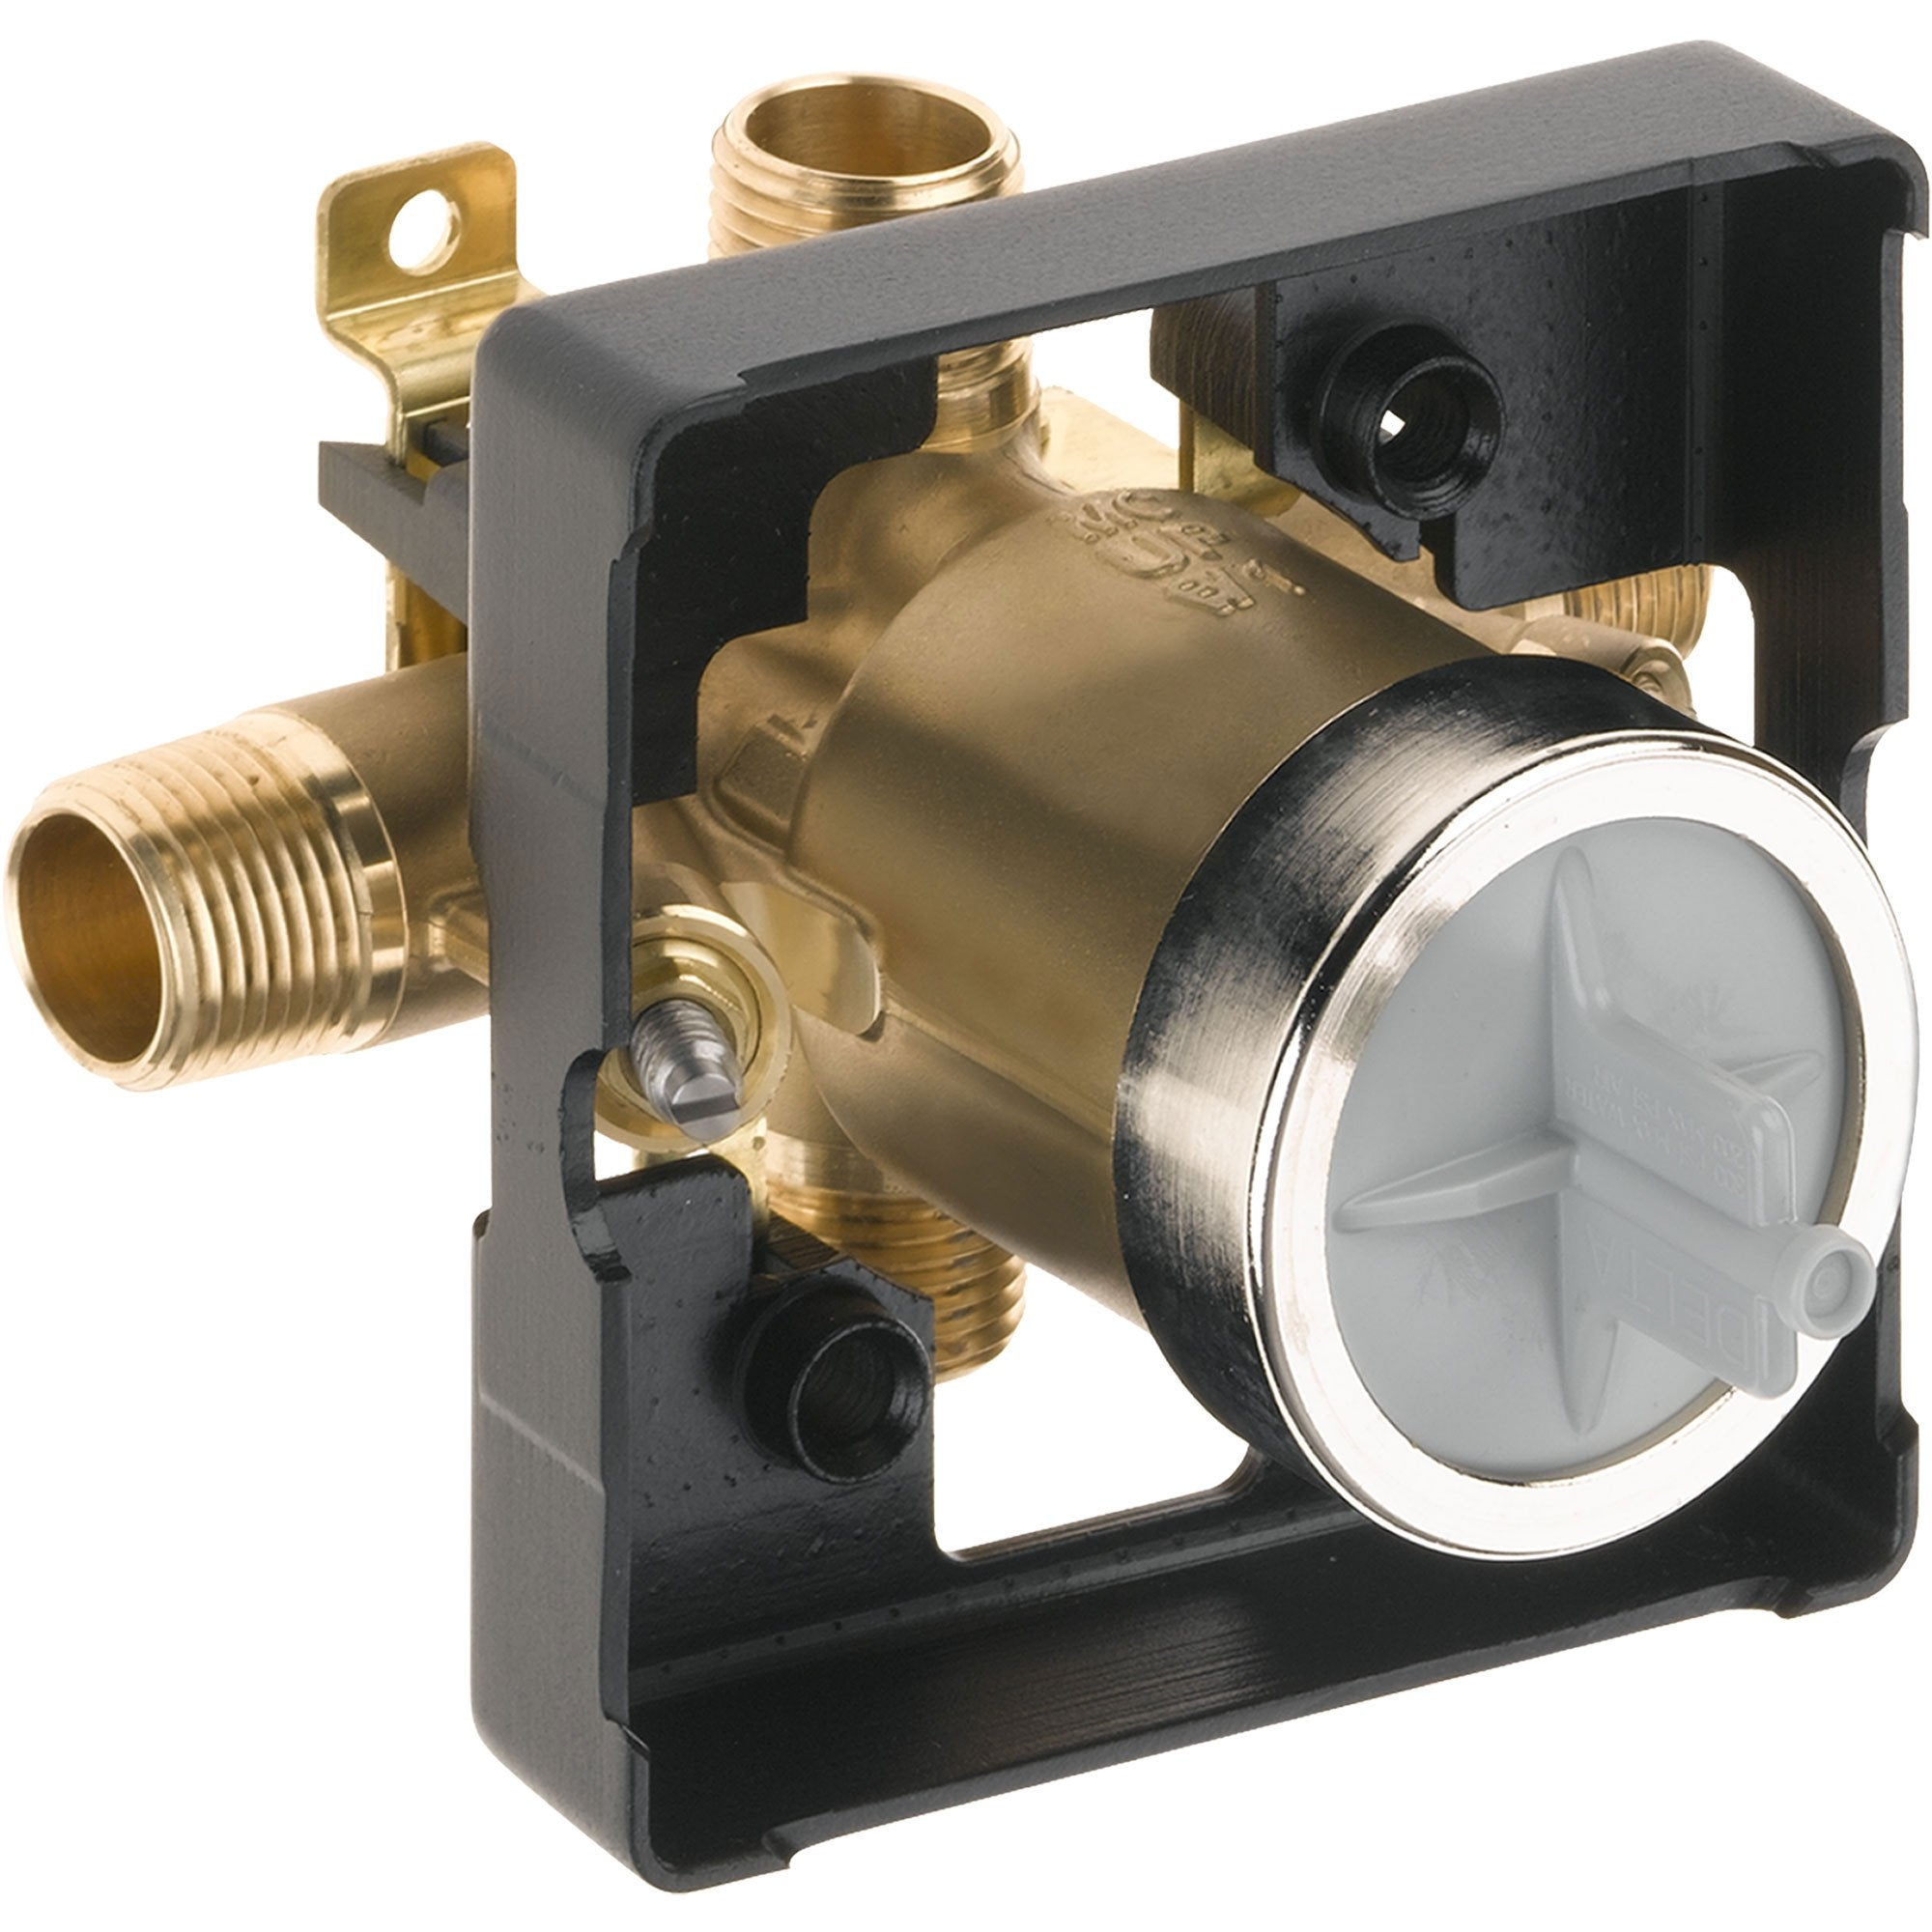 Delta MultiChoice Universal Tub and Shower Rough-in Valve with Stops 764684